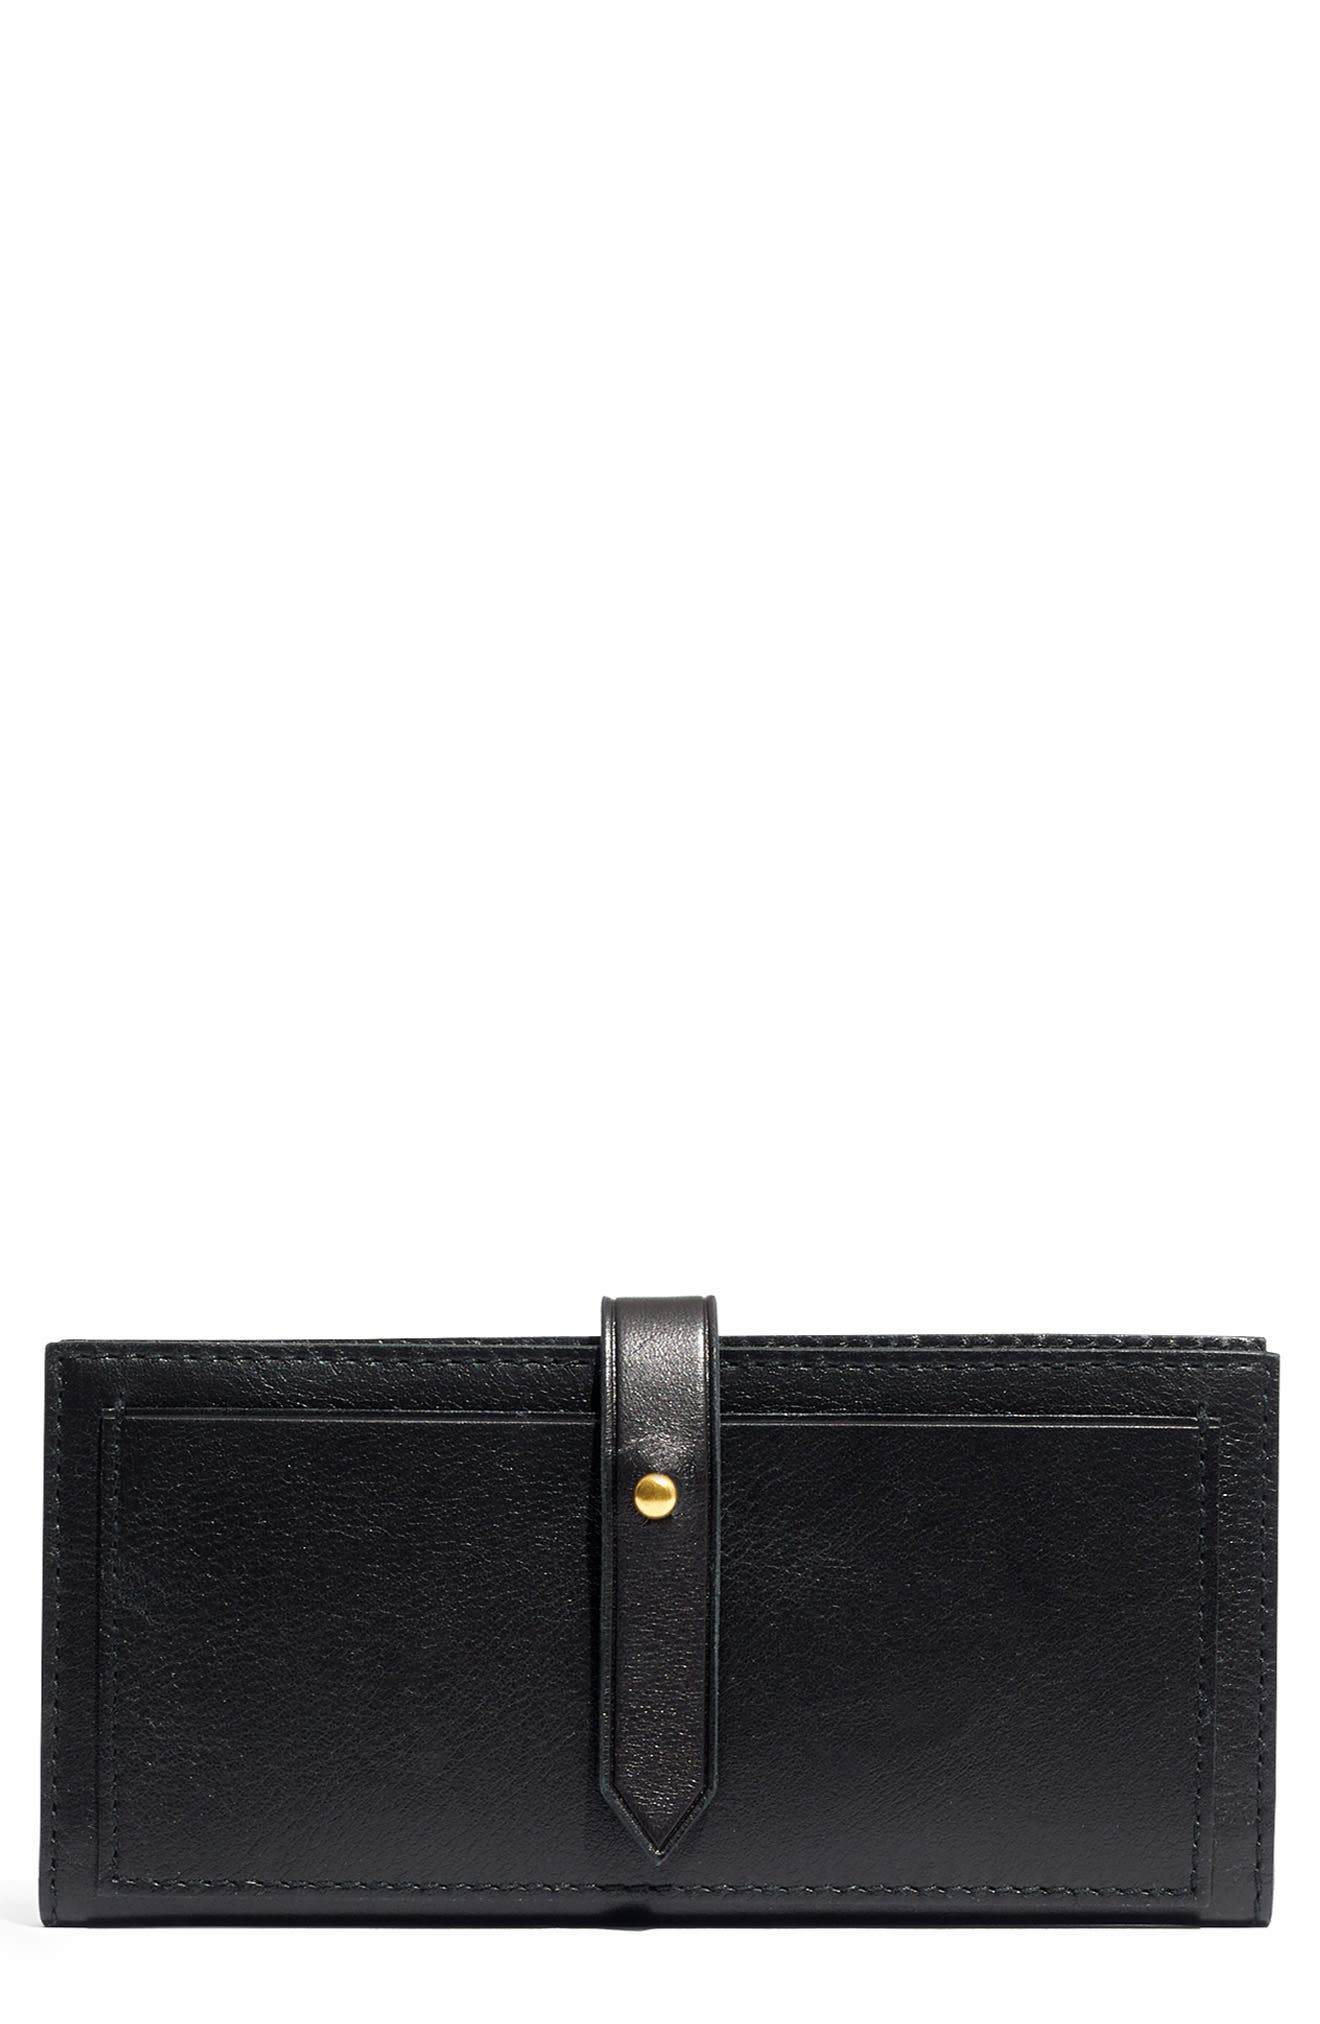 New Post Leather Wallet,                             Main thumbnail 1, color,                             TRUE BLACK